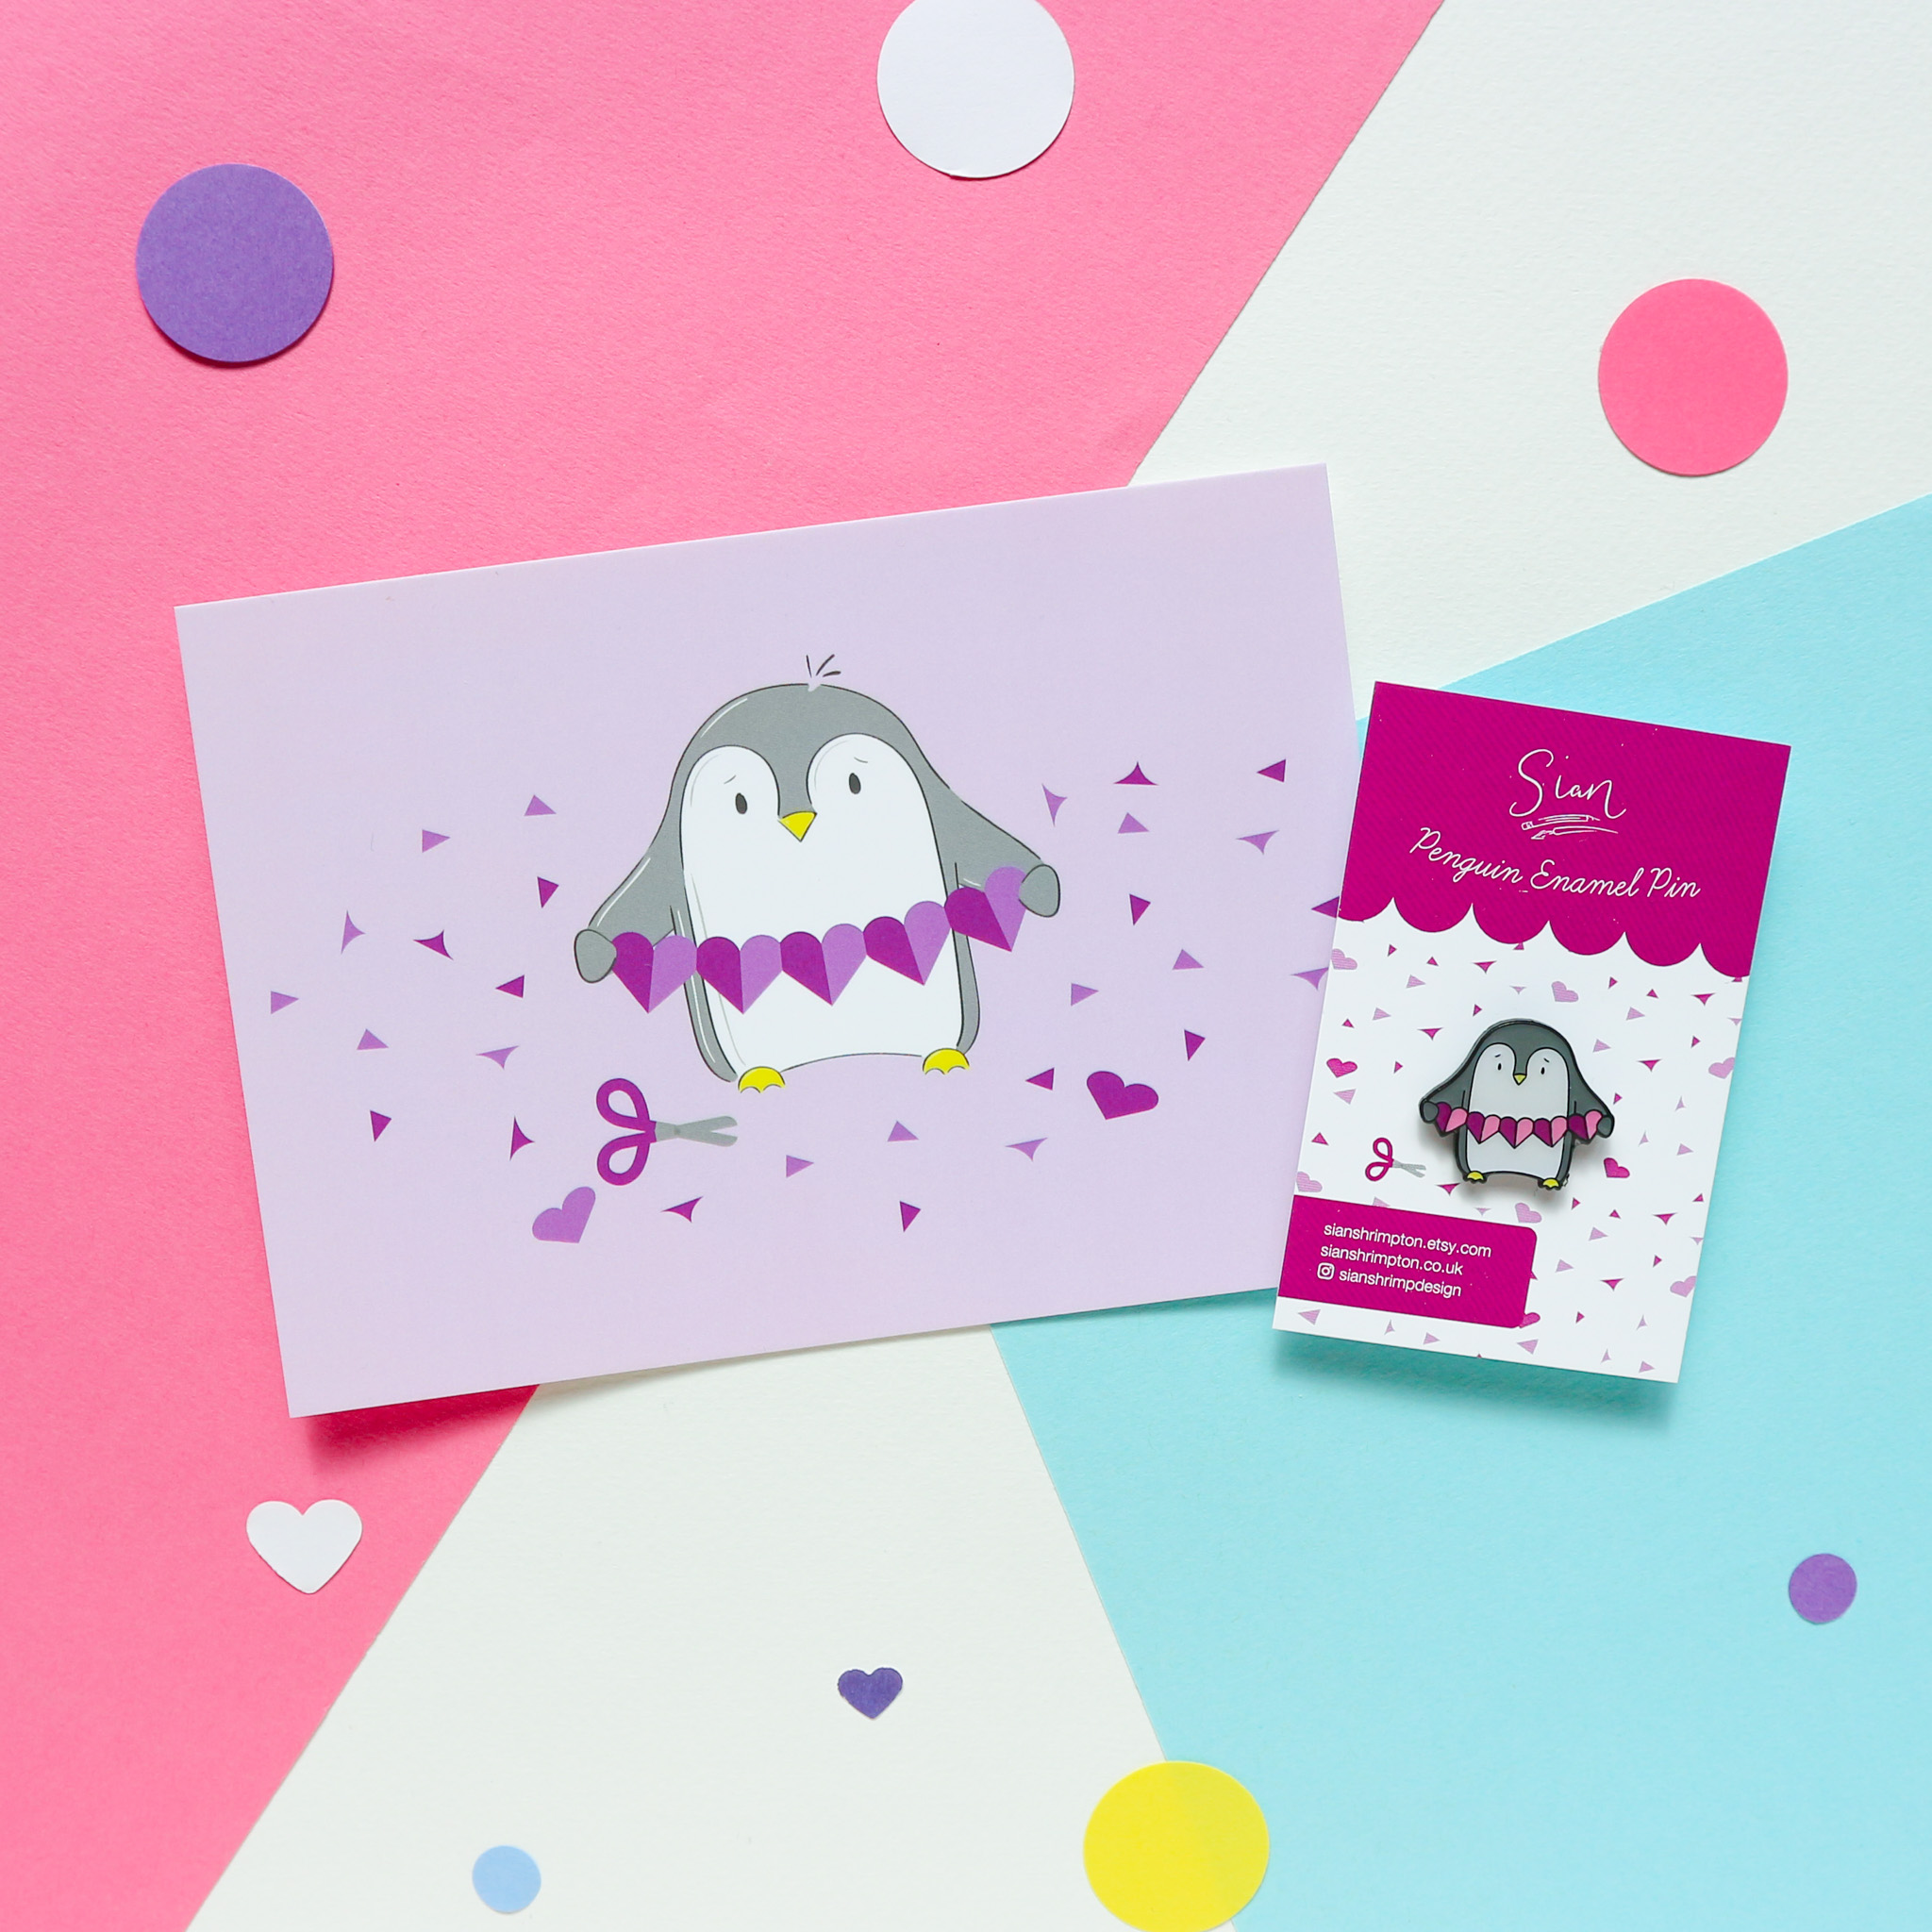 Penguin Enamel Pin holding a purple heart garland and a matching postcard, all set against a colourful background.